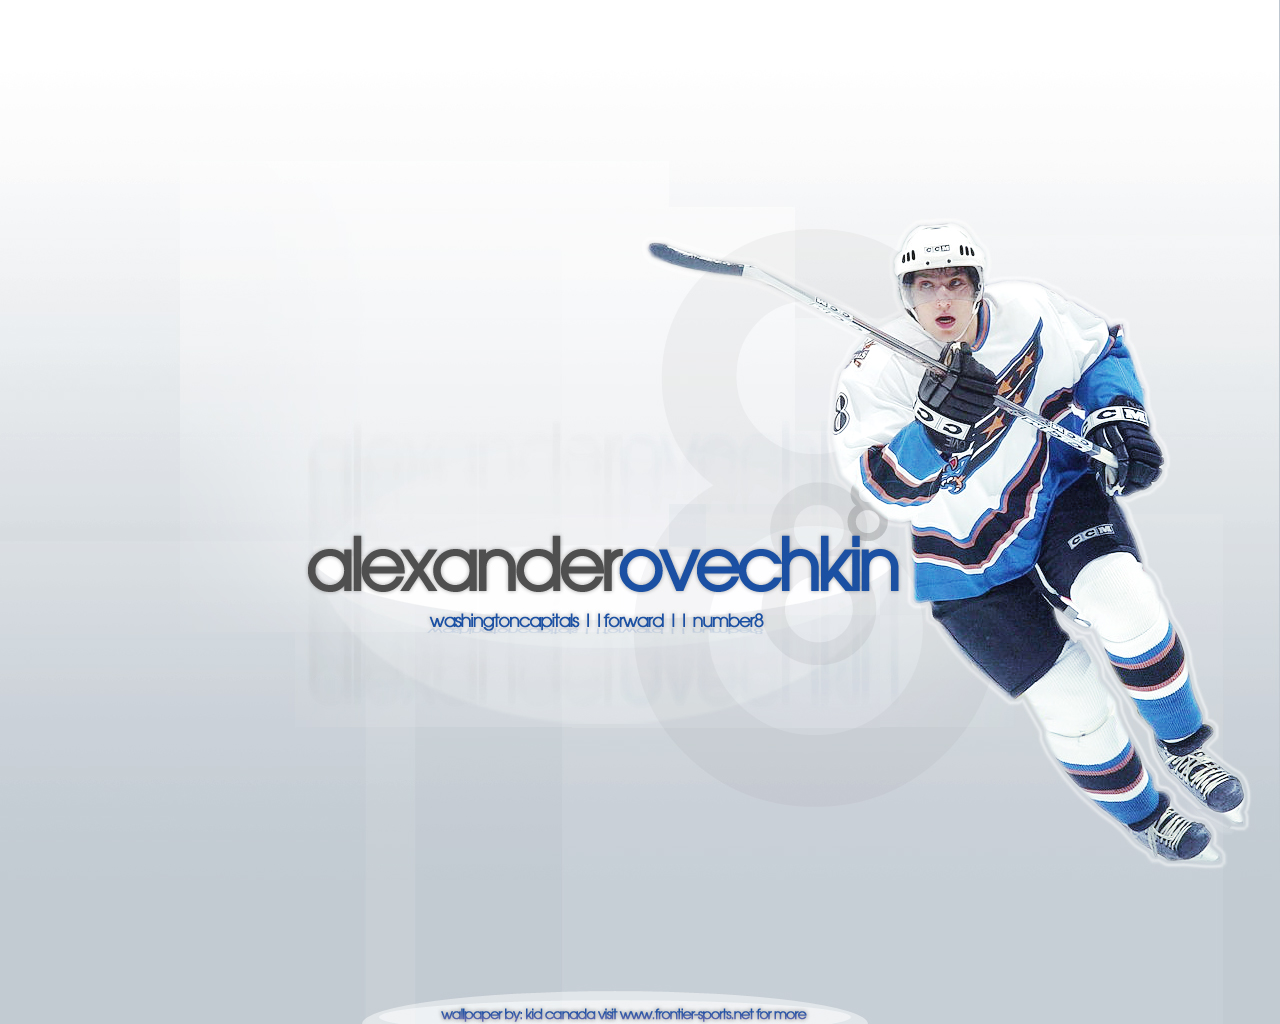 Alexander Ovechkin Wallpaper Washington Capitals IPad Wallpaper 1280x1024